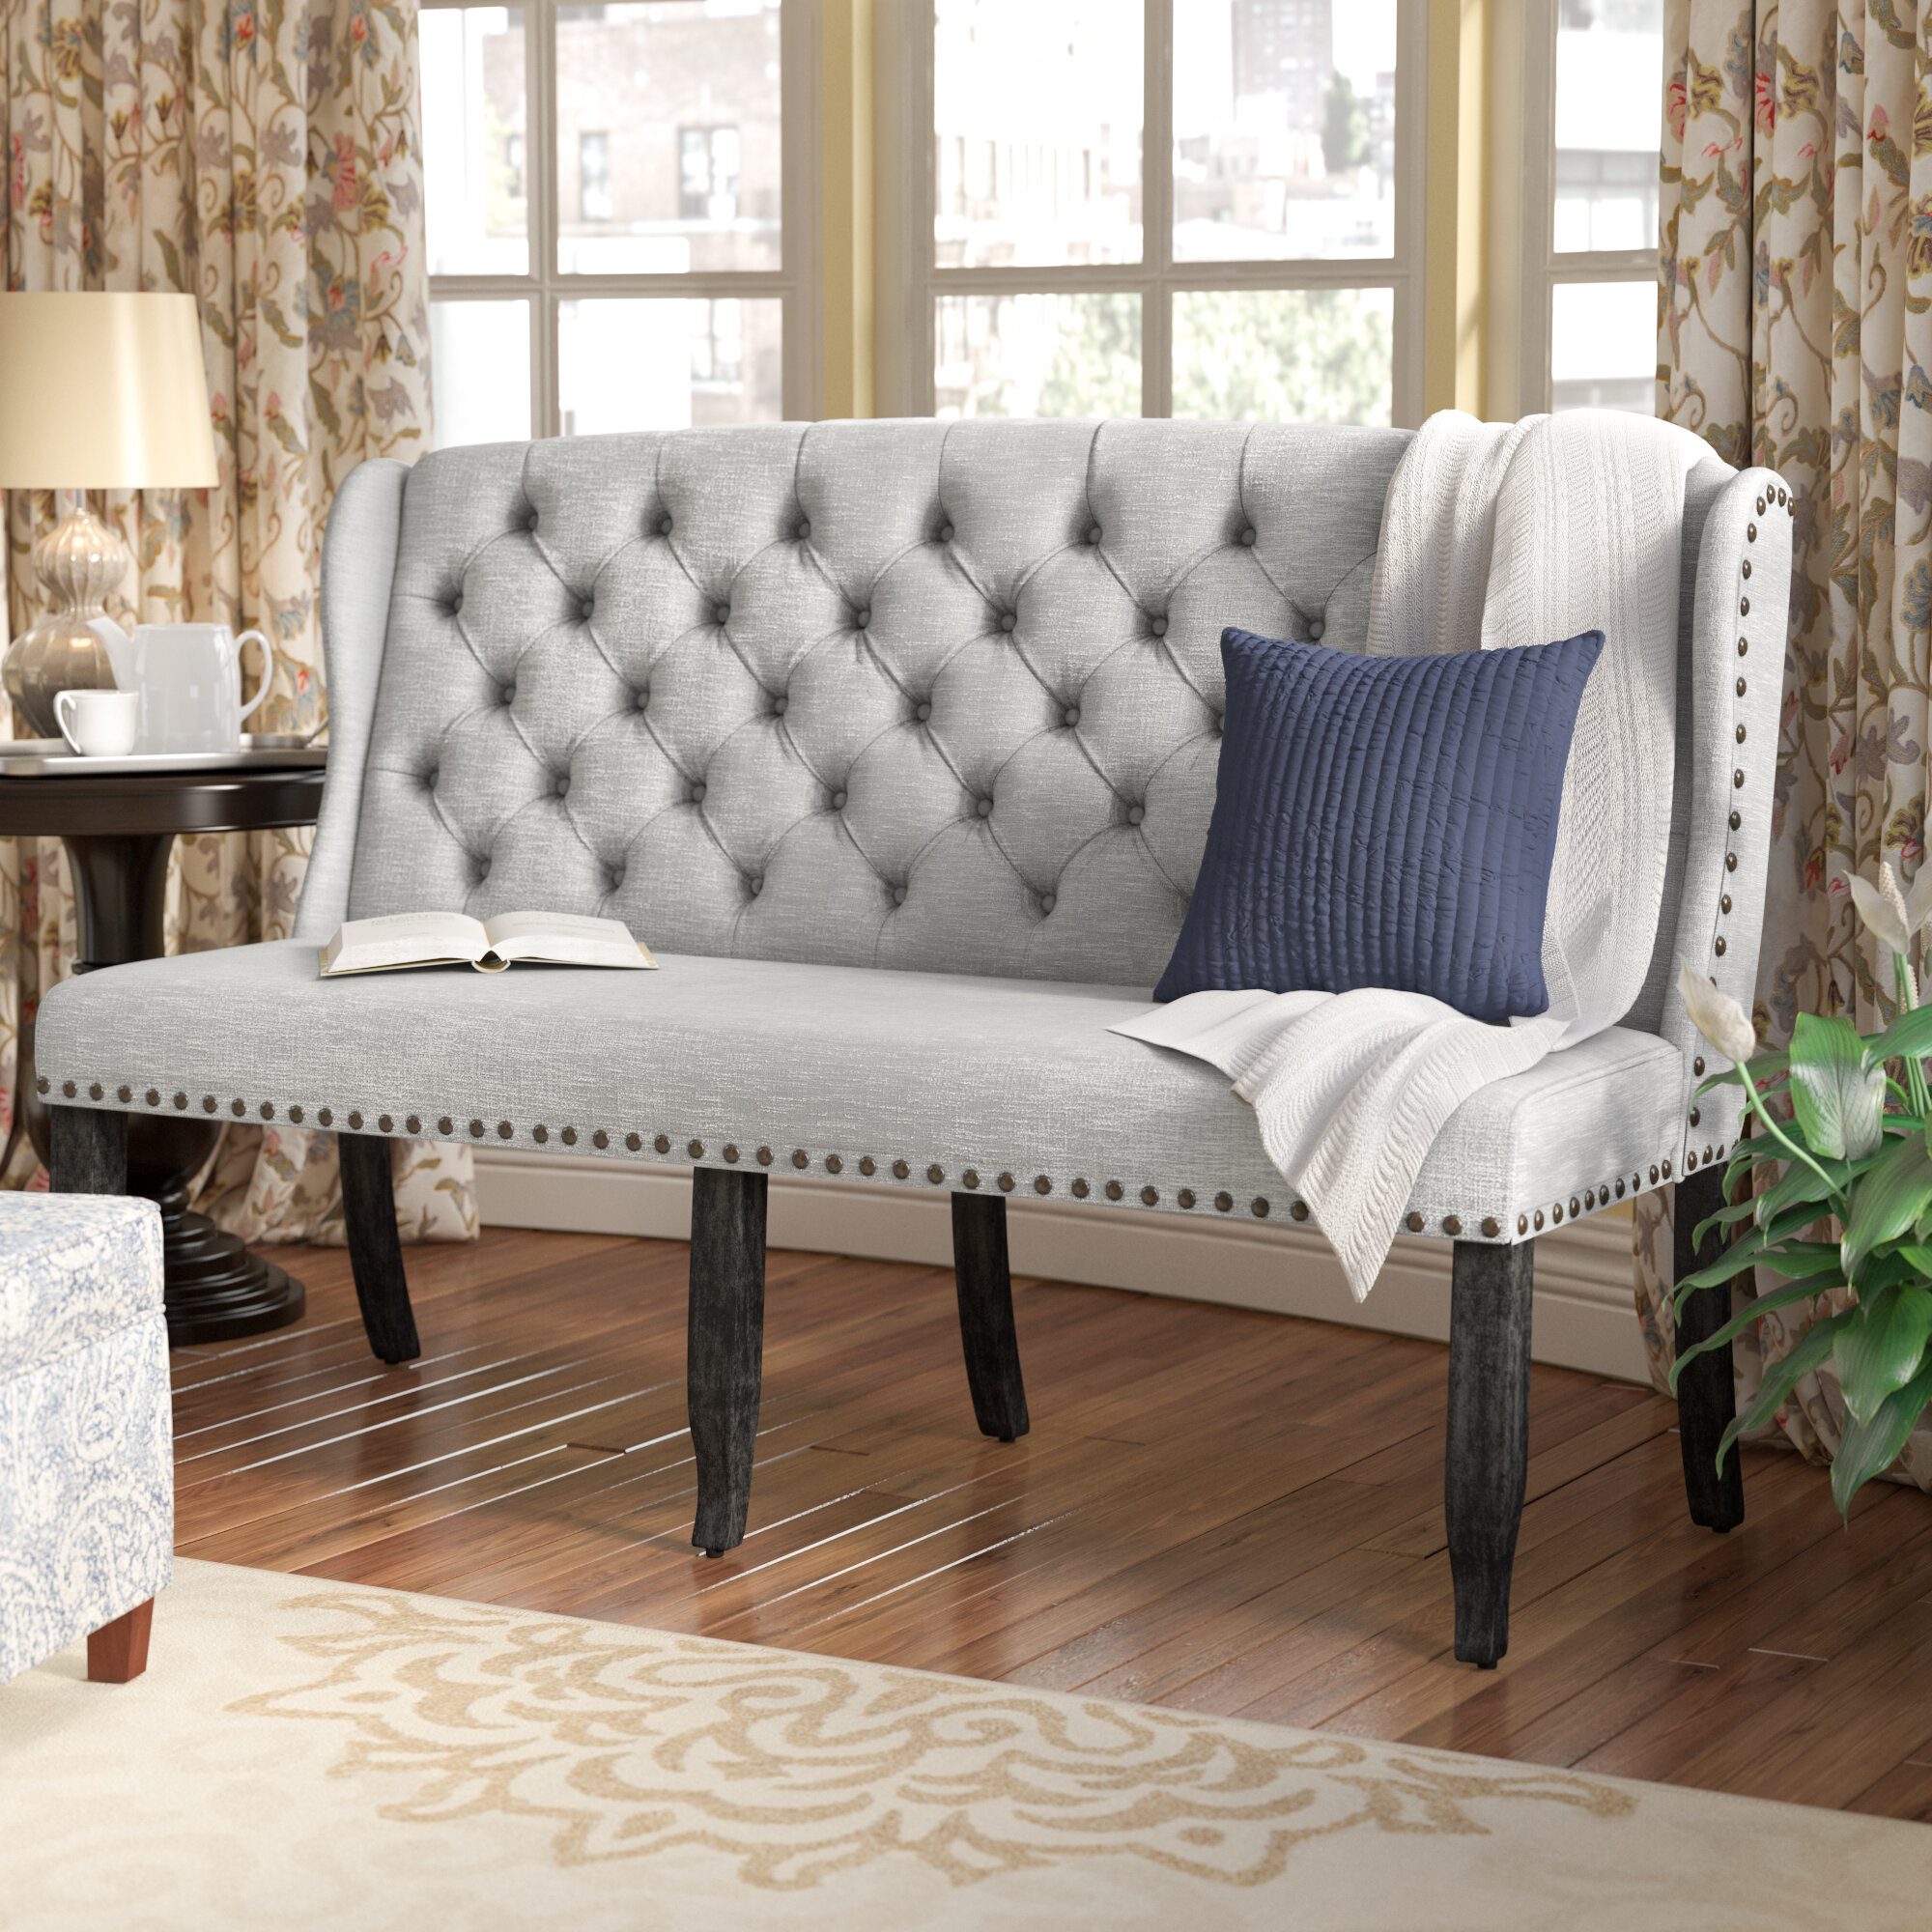 Outstanding Three Posts Yarmouth Upholstered Bench Reviews Wayfair Bralicious Painted Fabric Chair Ideas Braliciousco